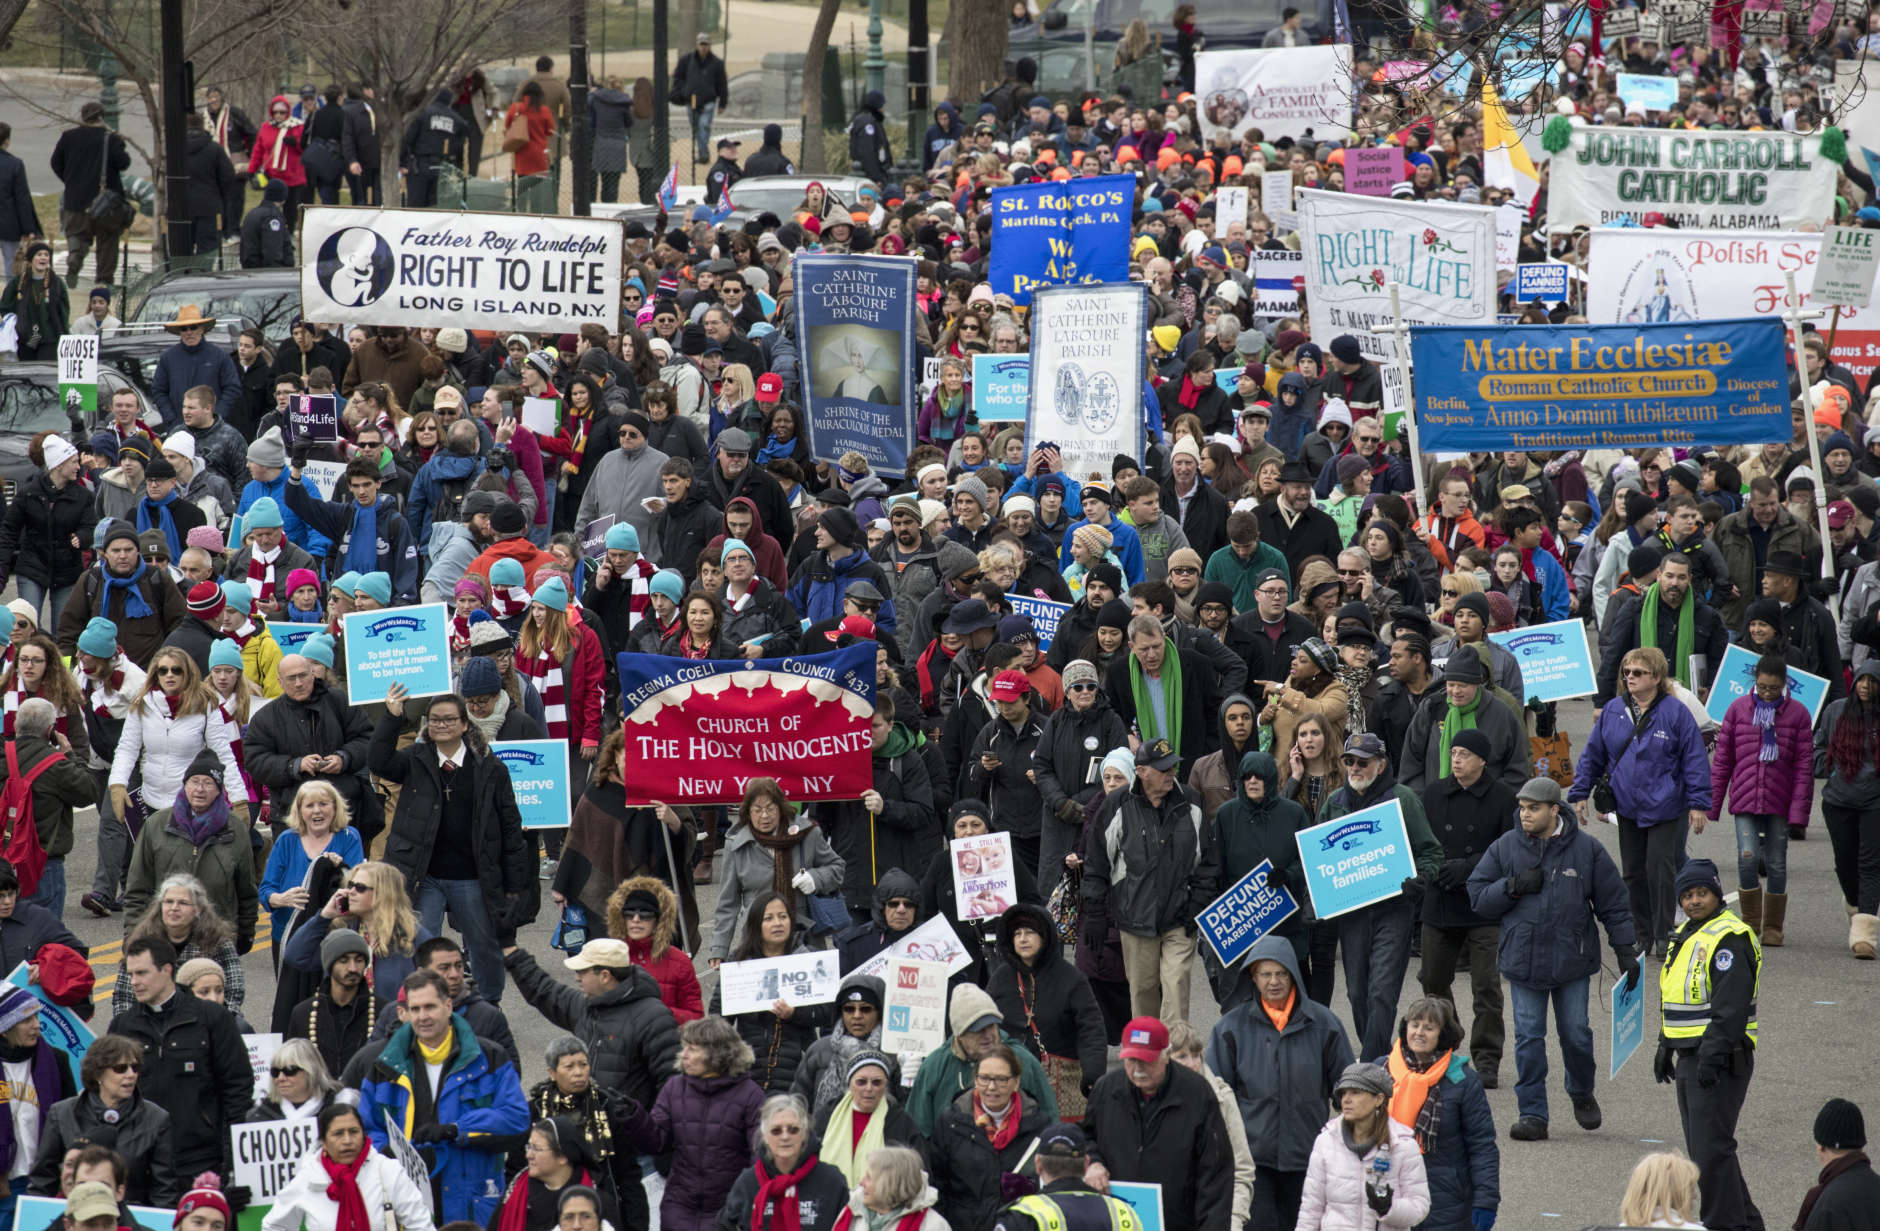 Anti-abortion demonstrators arrive on Capitol Hill in Washington, Friday, Jan. 27, 2017, during the March for Life. The march, held each year in the Washington marks the anniversary of the 1973 Supreme Court decision legalizing abortion. (AP Photo/J. Scott Applewhite)